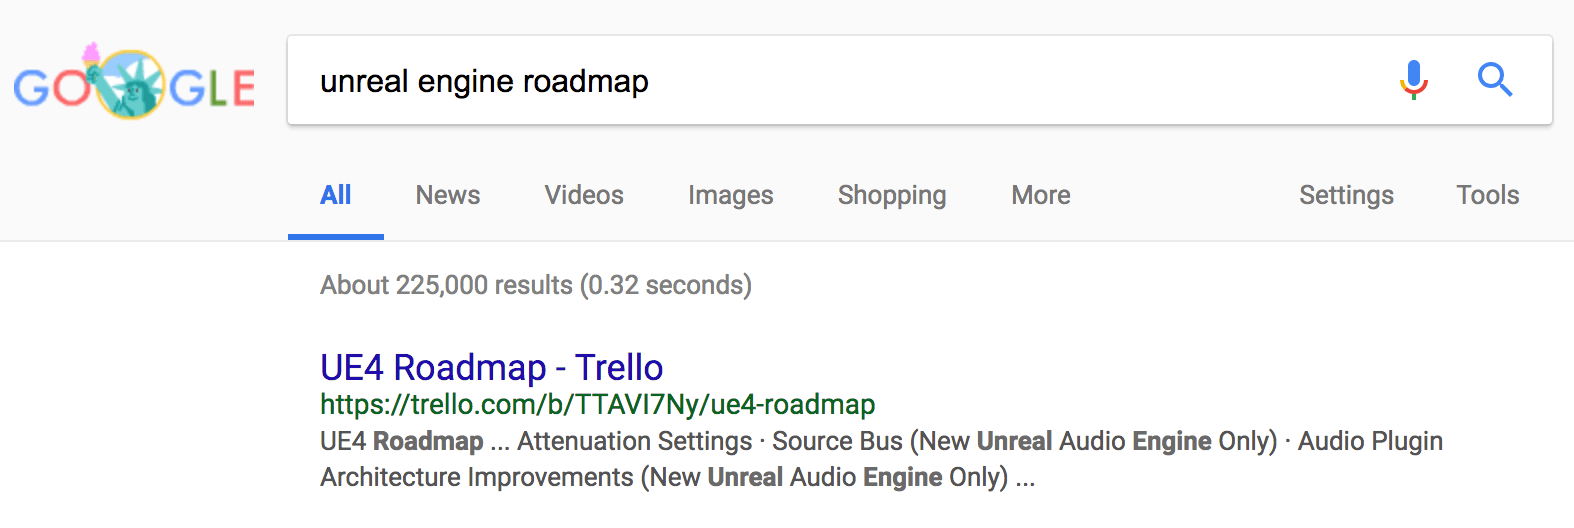 unreal engine roadmap SEO rank